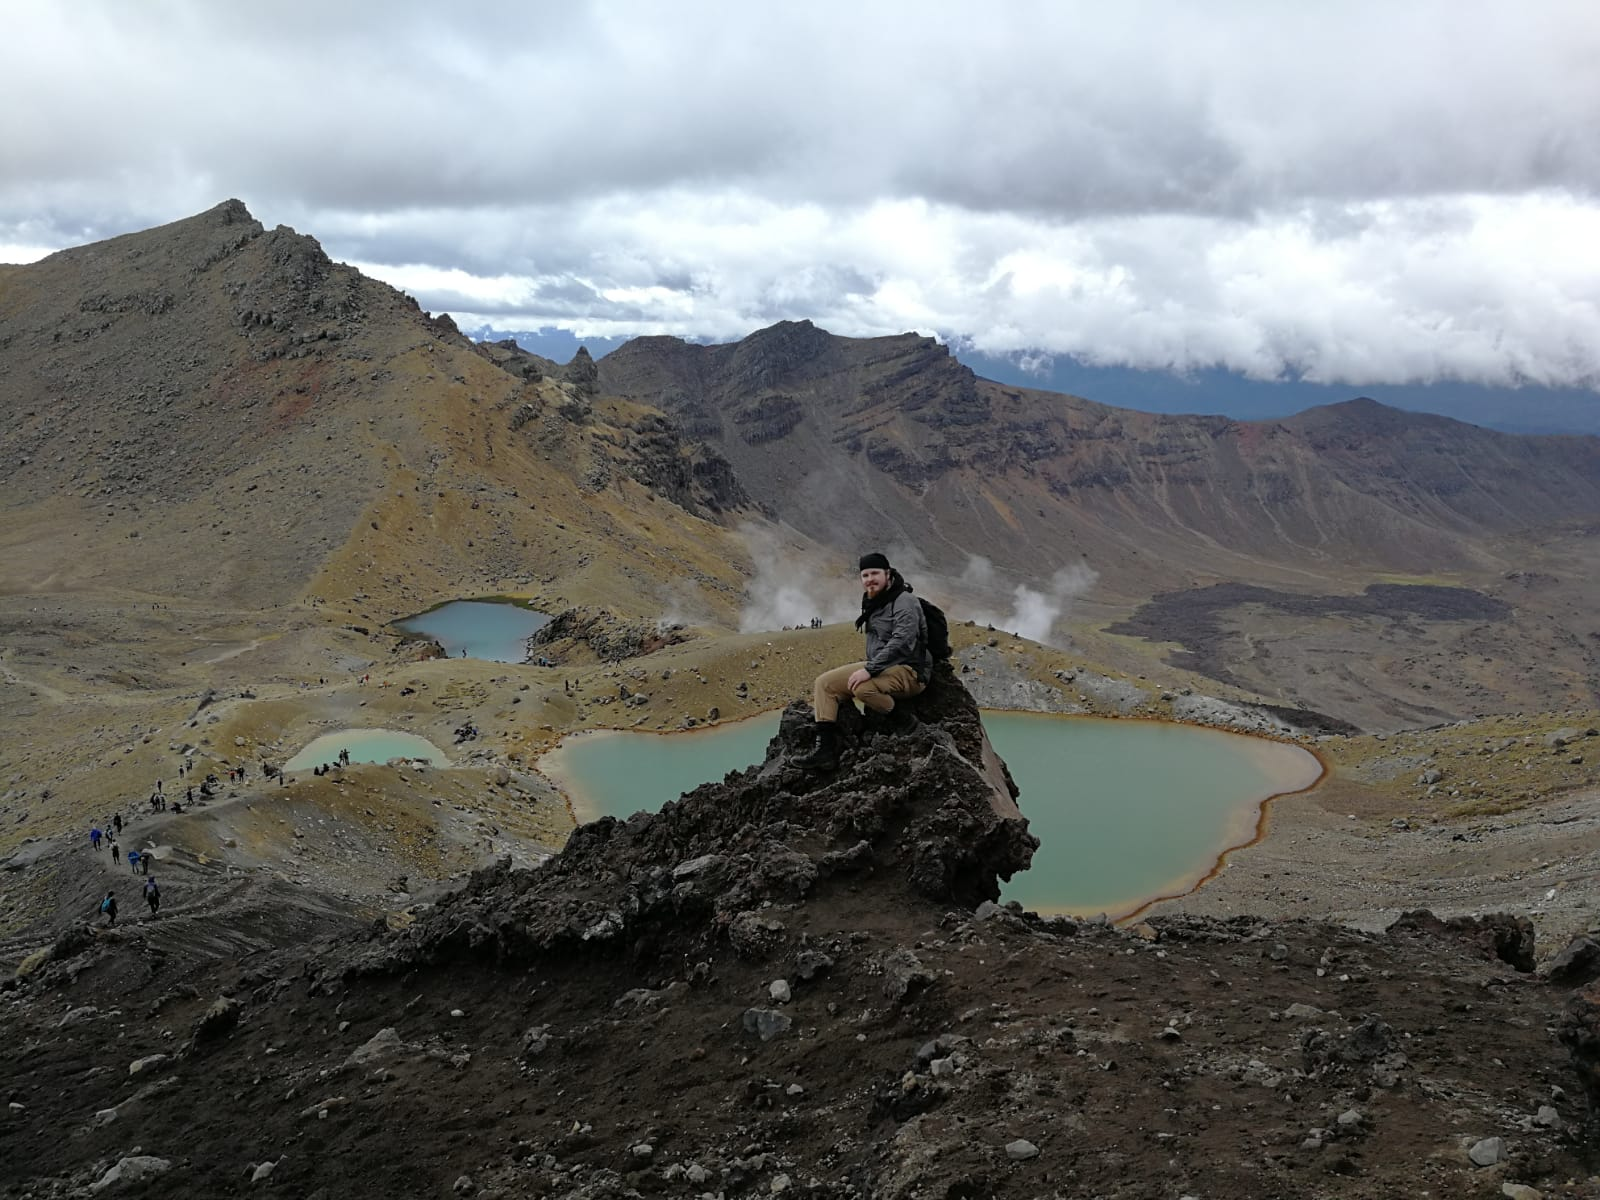 A man sitting on top of a hill with mountains and emerald mountain lakes on the background.